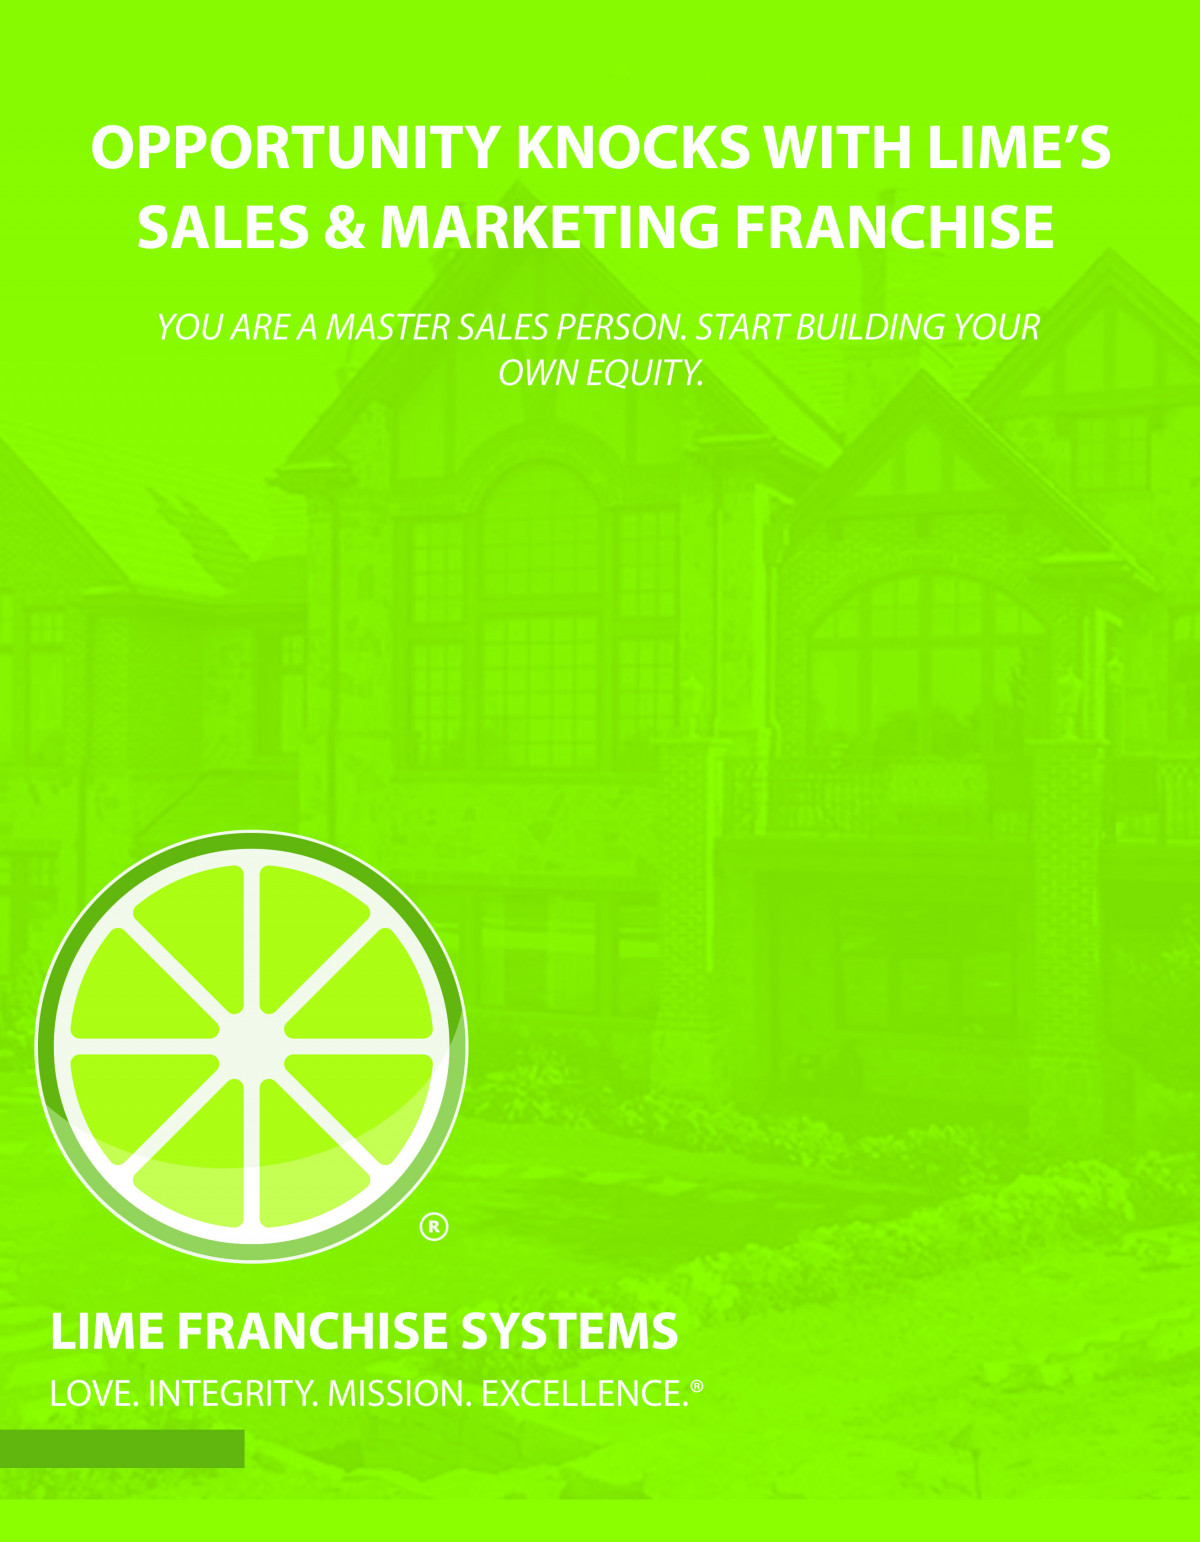 Opportunity Knocks With LIME's Sales & Marketing Franchise 3 of 3